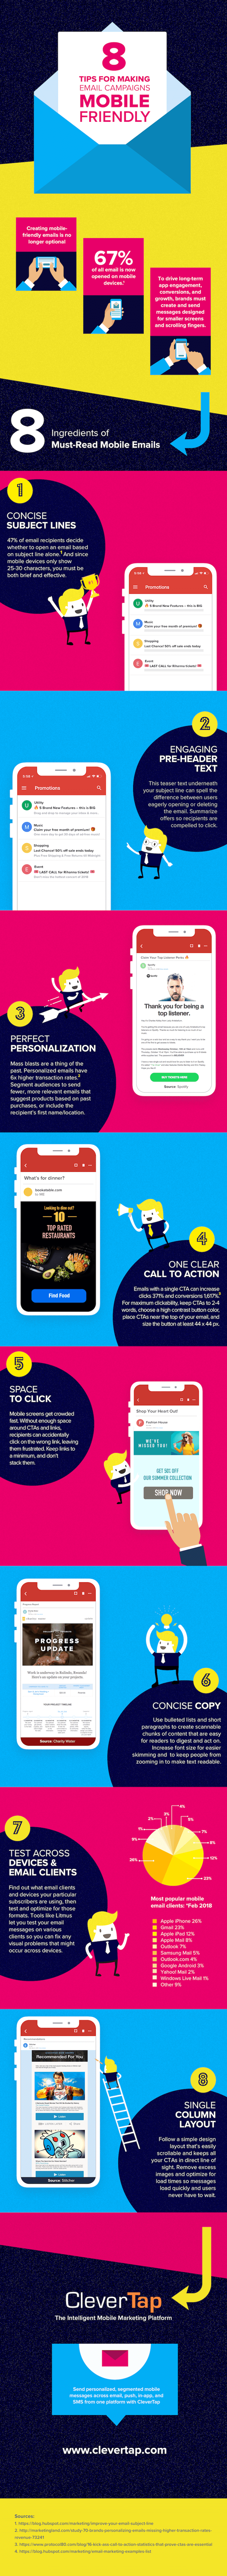 Infographic-8-Tips-for-Making-Email-Campaigns-Mobile-Friendly1